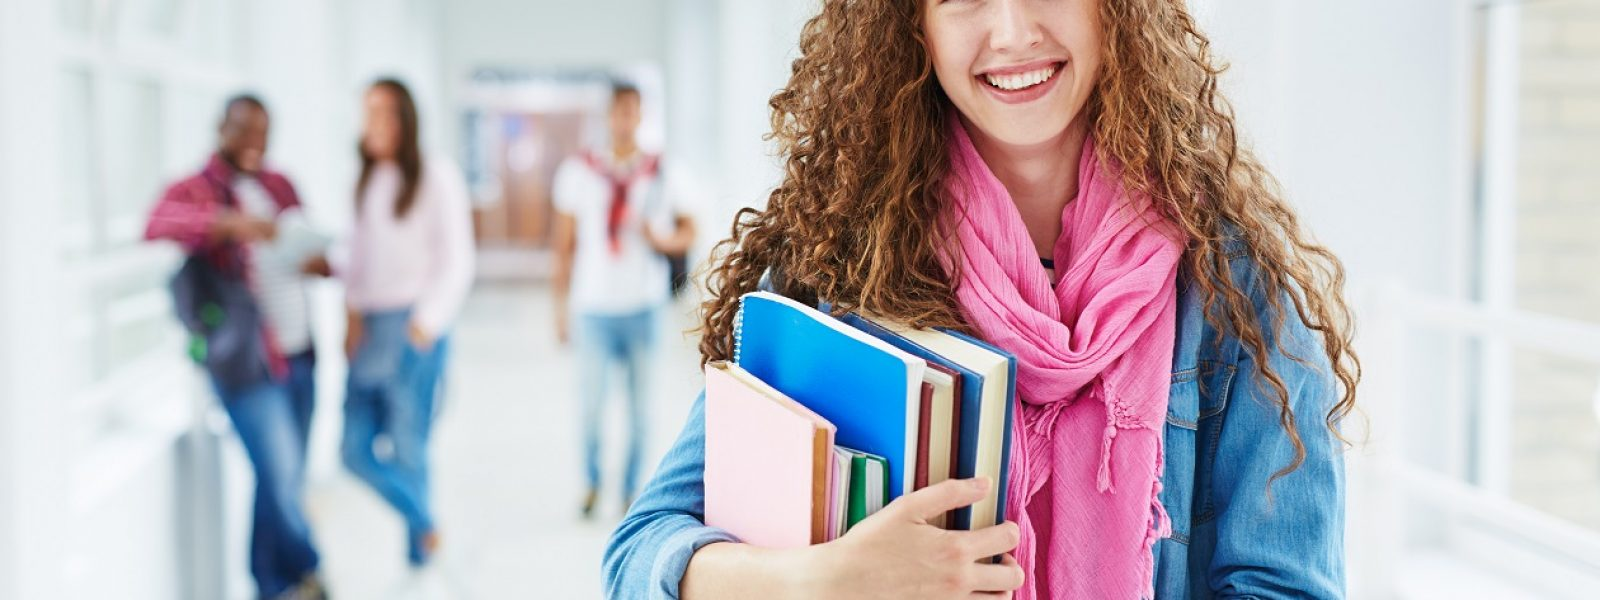 Smiling teenage girl with books looking at camera